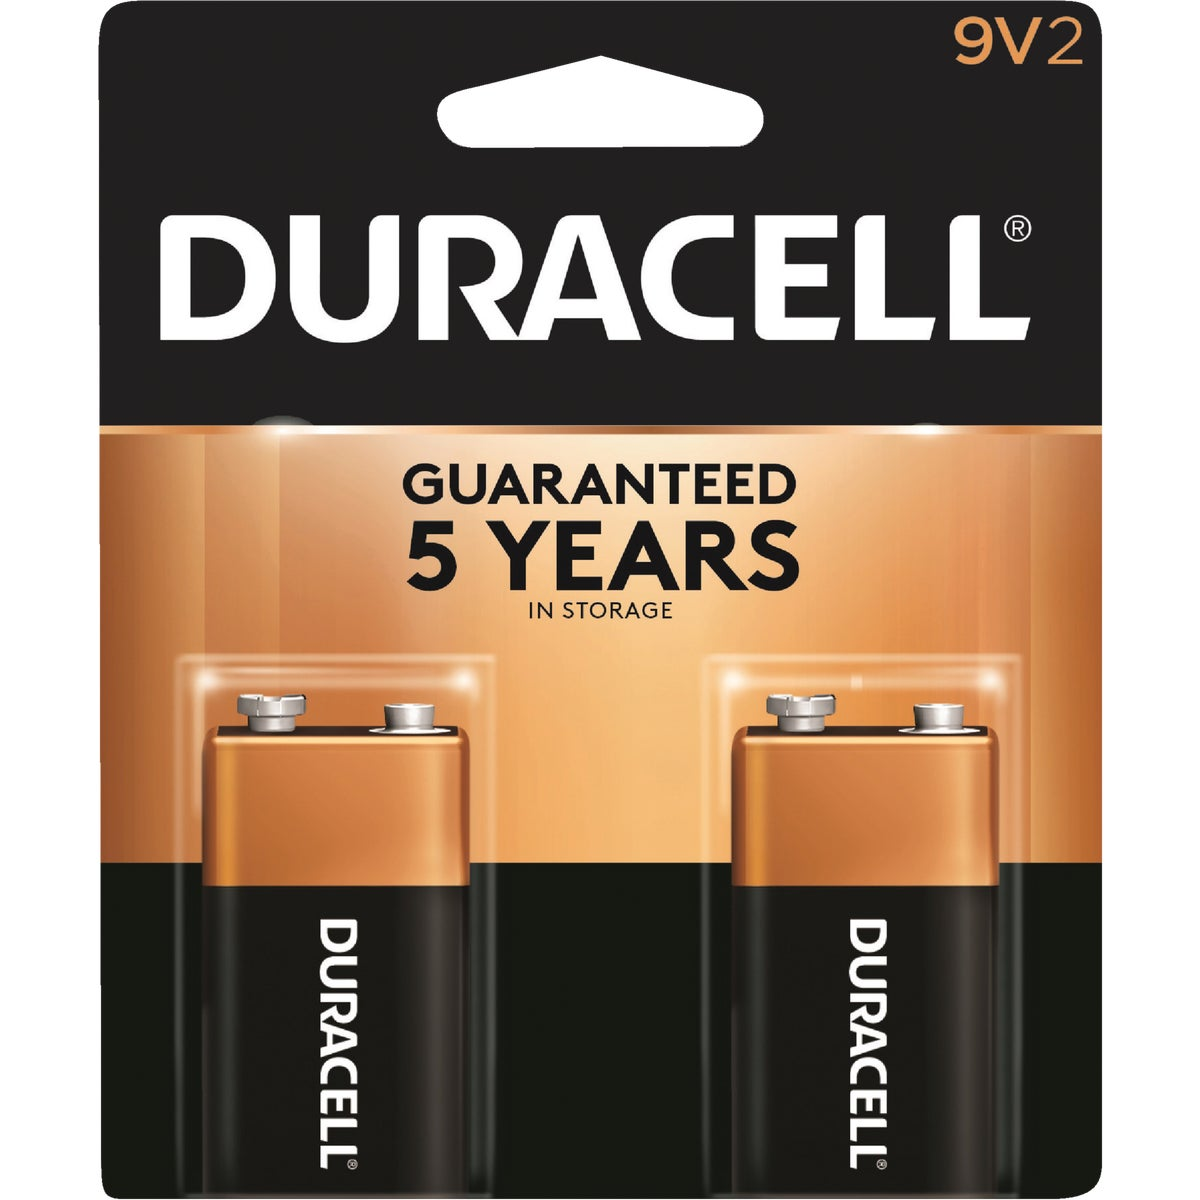 2PK 9V ALKALINE BATTERY - 03961 by P & G  Duracell